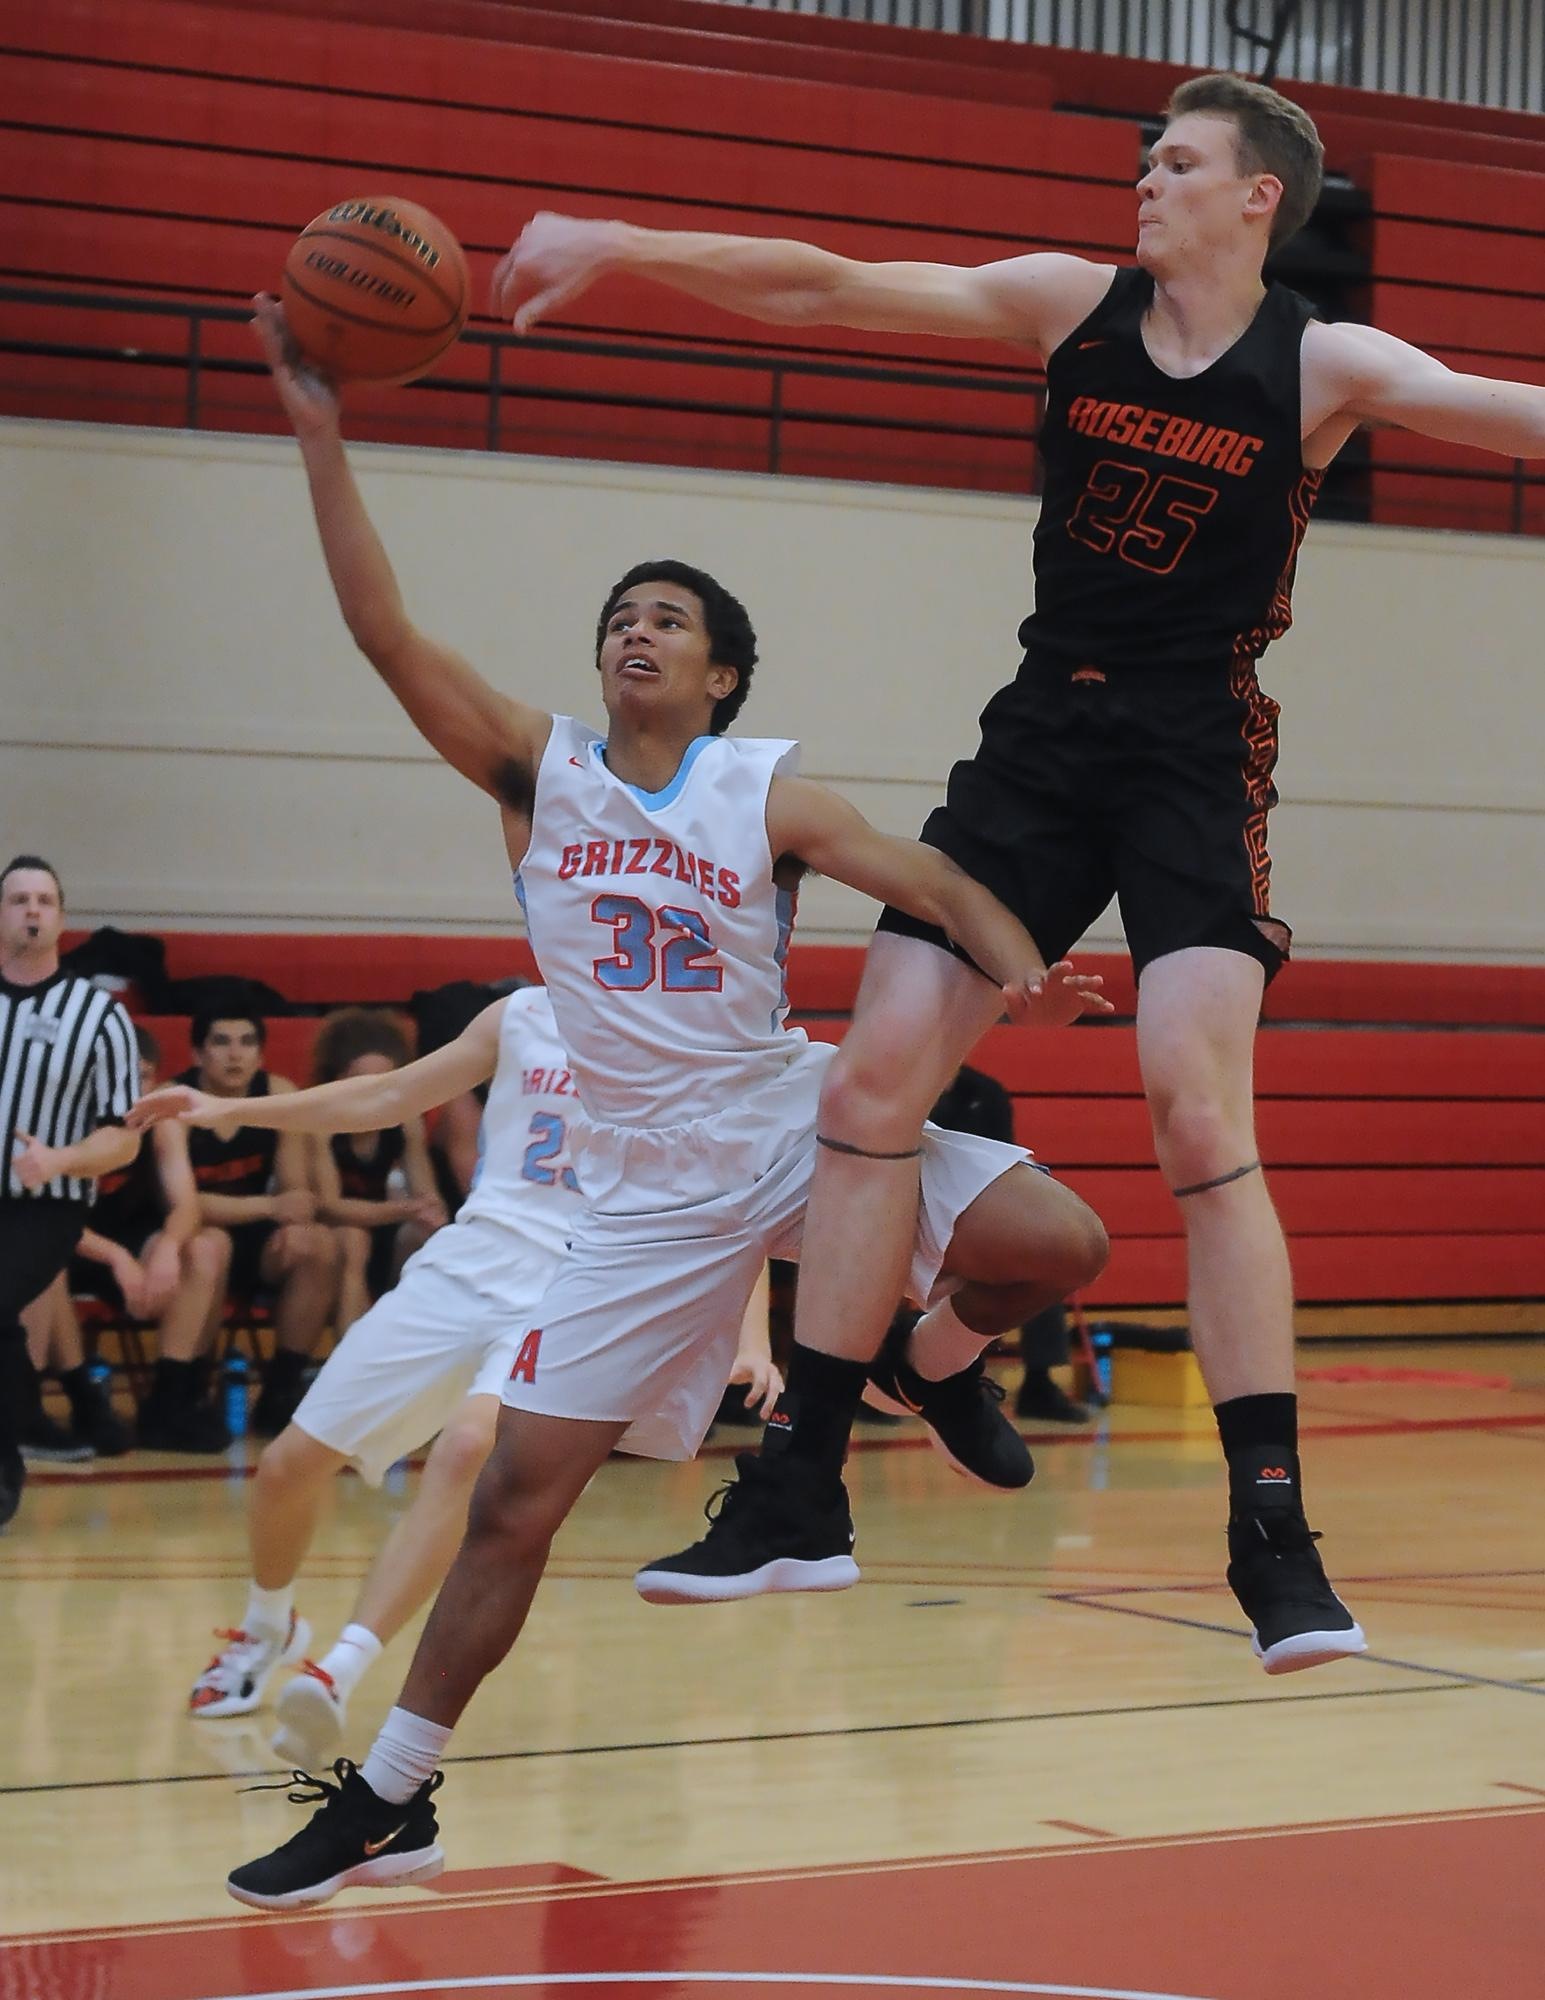 Johnathan Stone, (25), defends a shot by Austin Harris (32). Photo by Denise Baratta